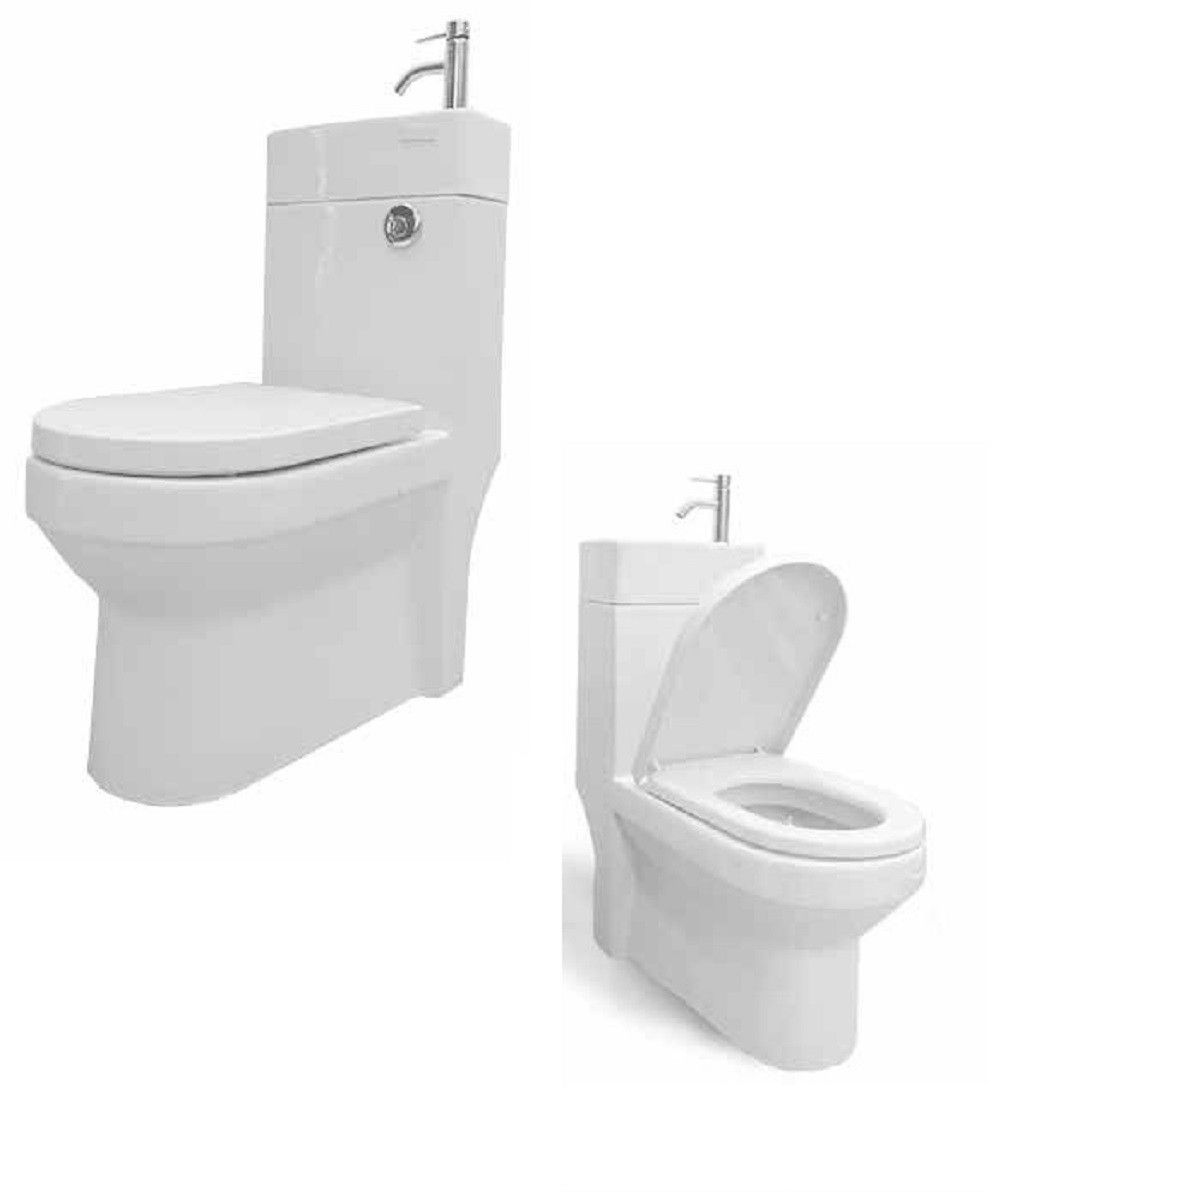 Combined Two In One Wash Basin U0026 Toilet